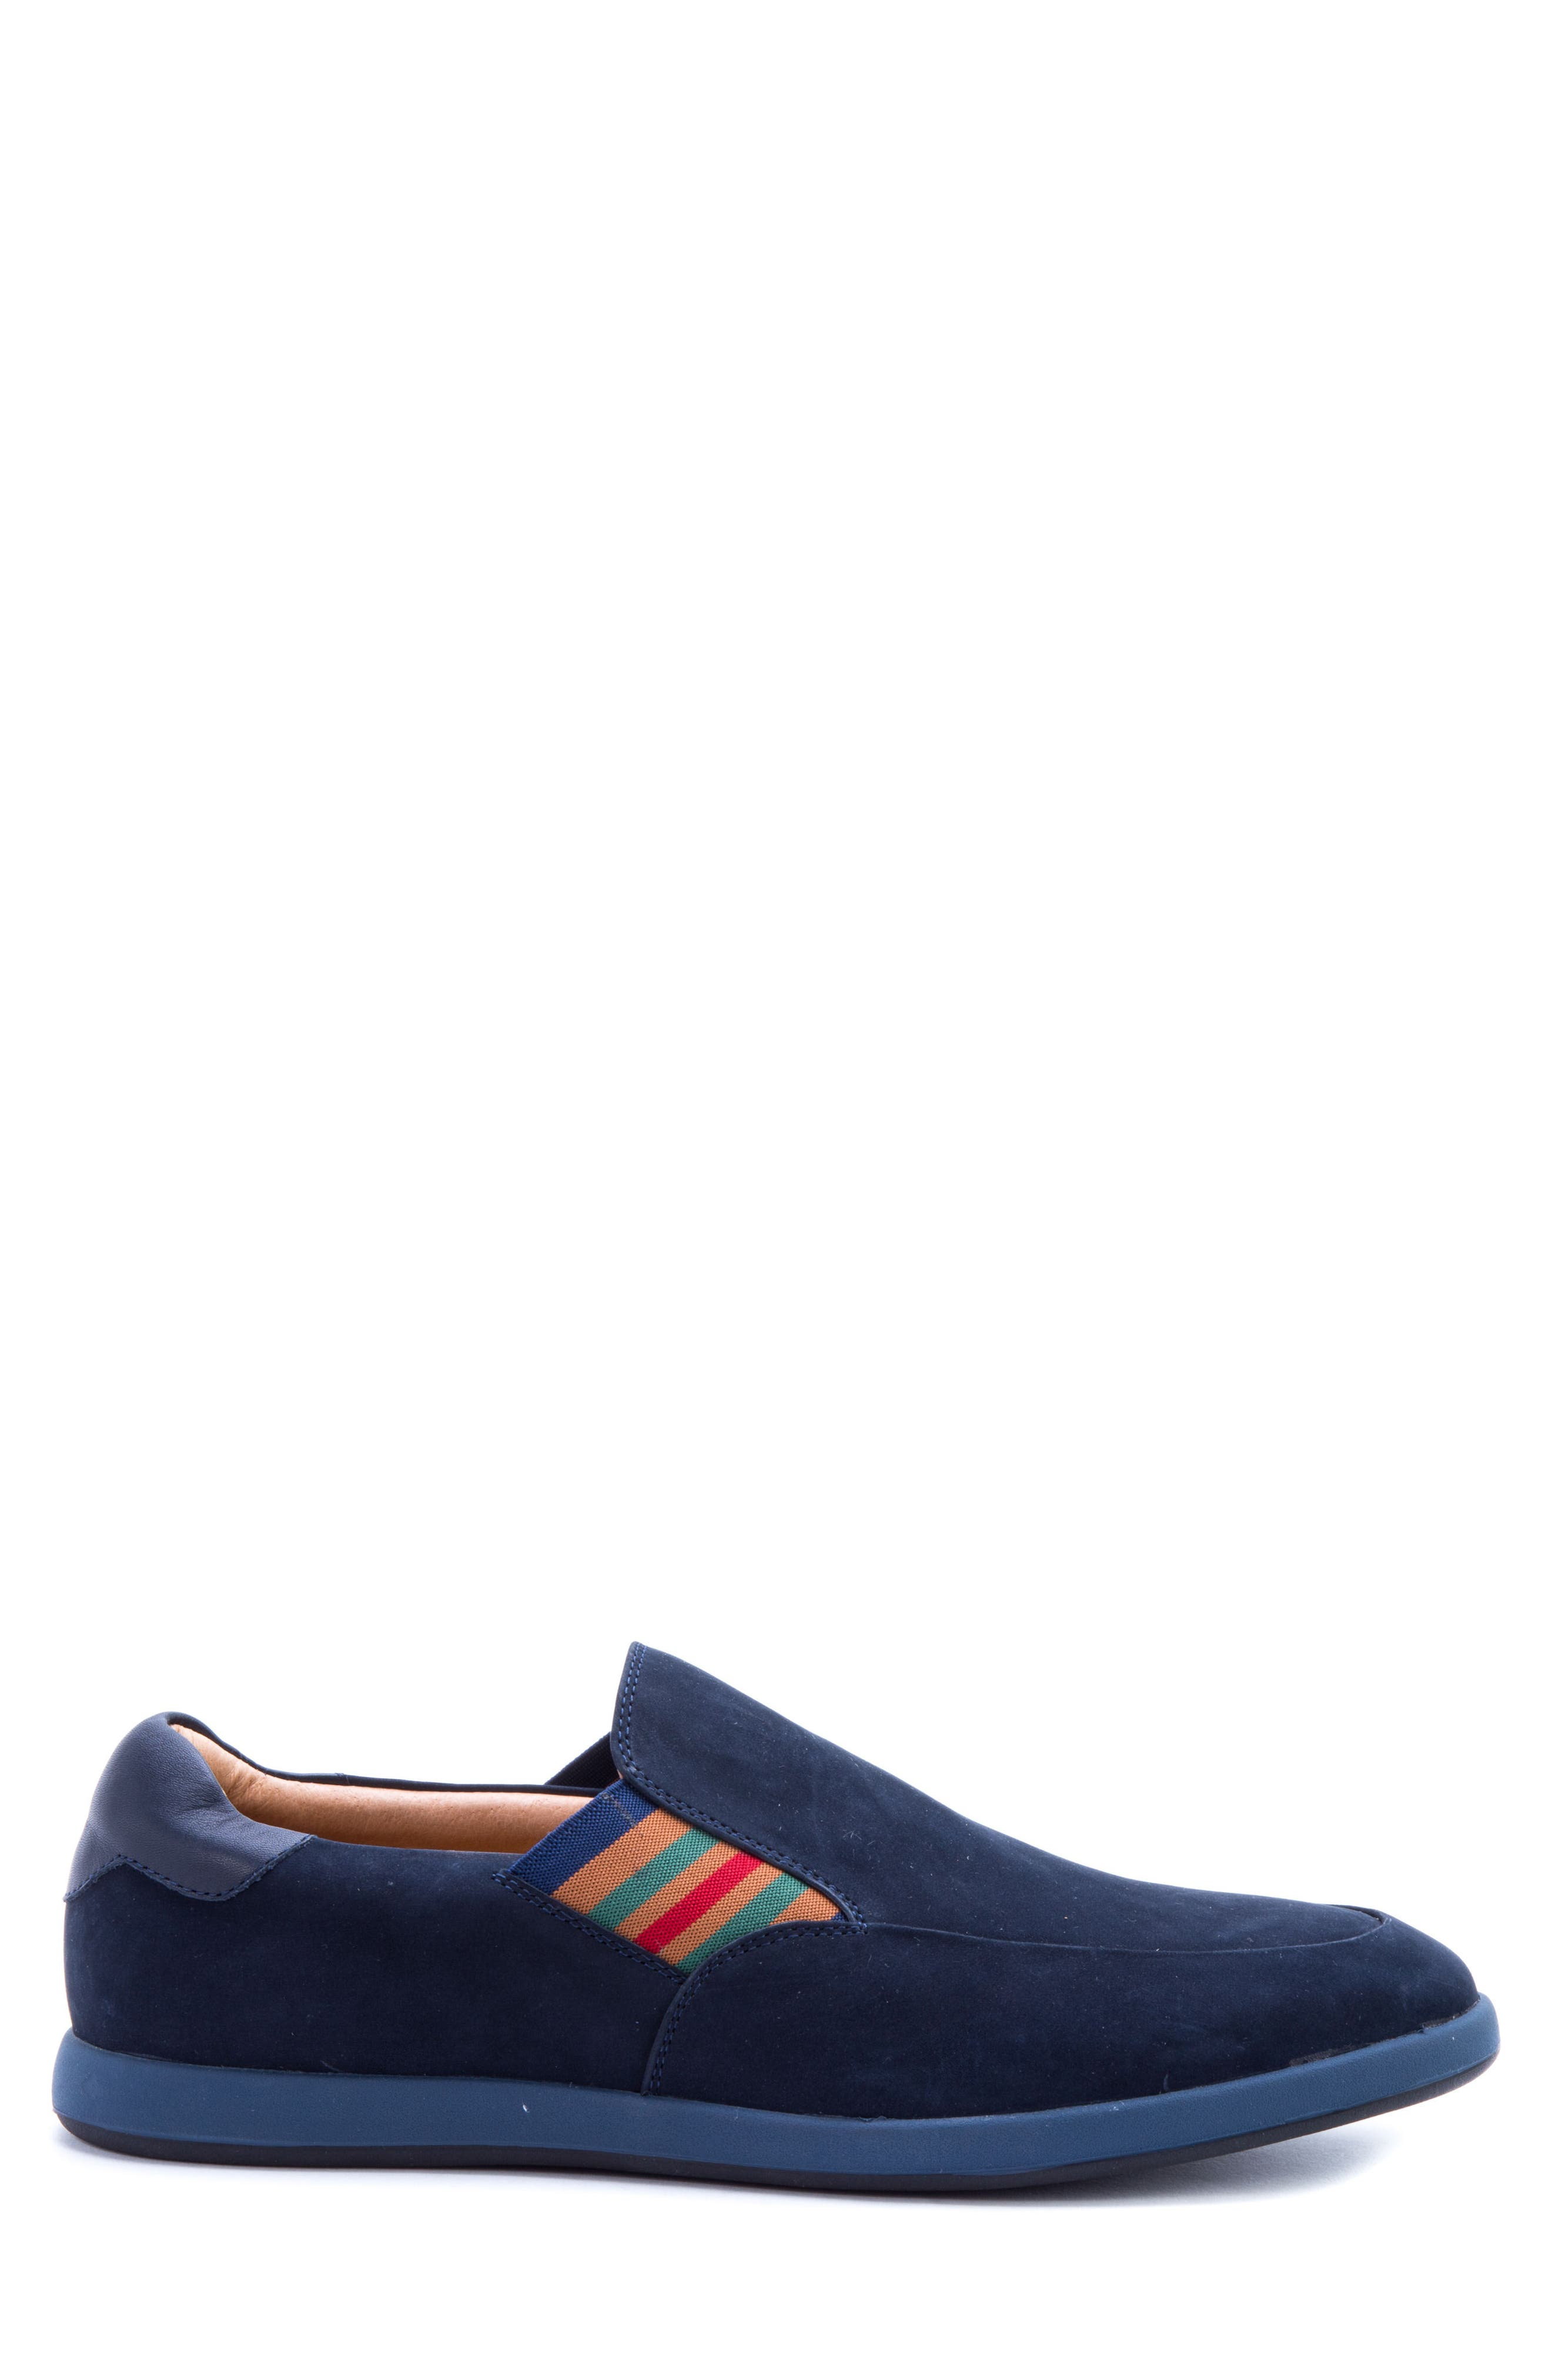 Avenida Striped Slip-On,                             Alternate thumbnail 3, color,                             Navy Suede